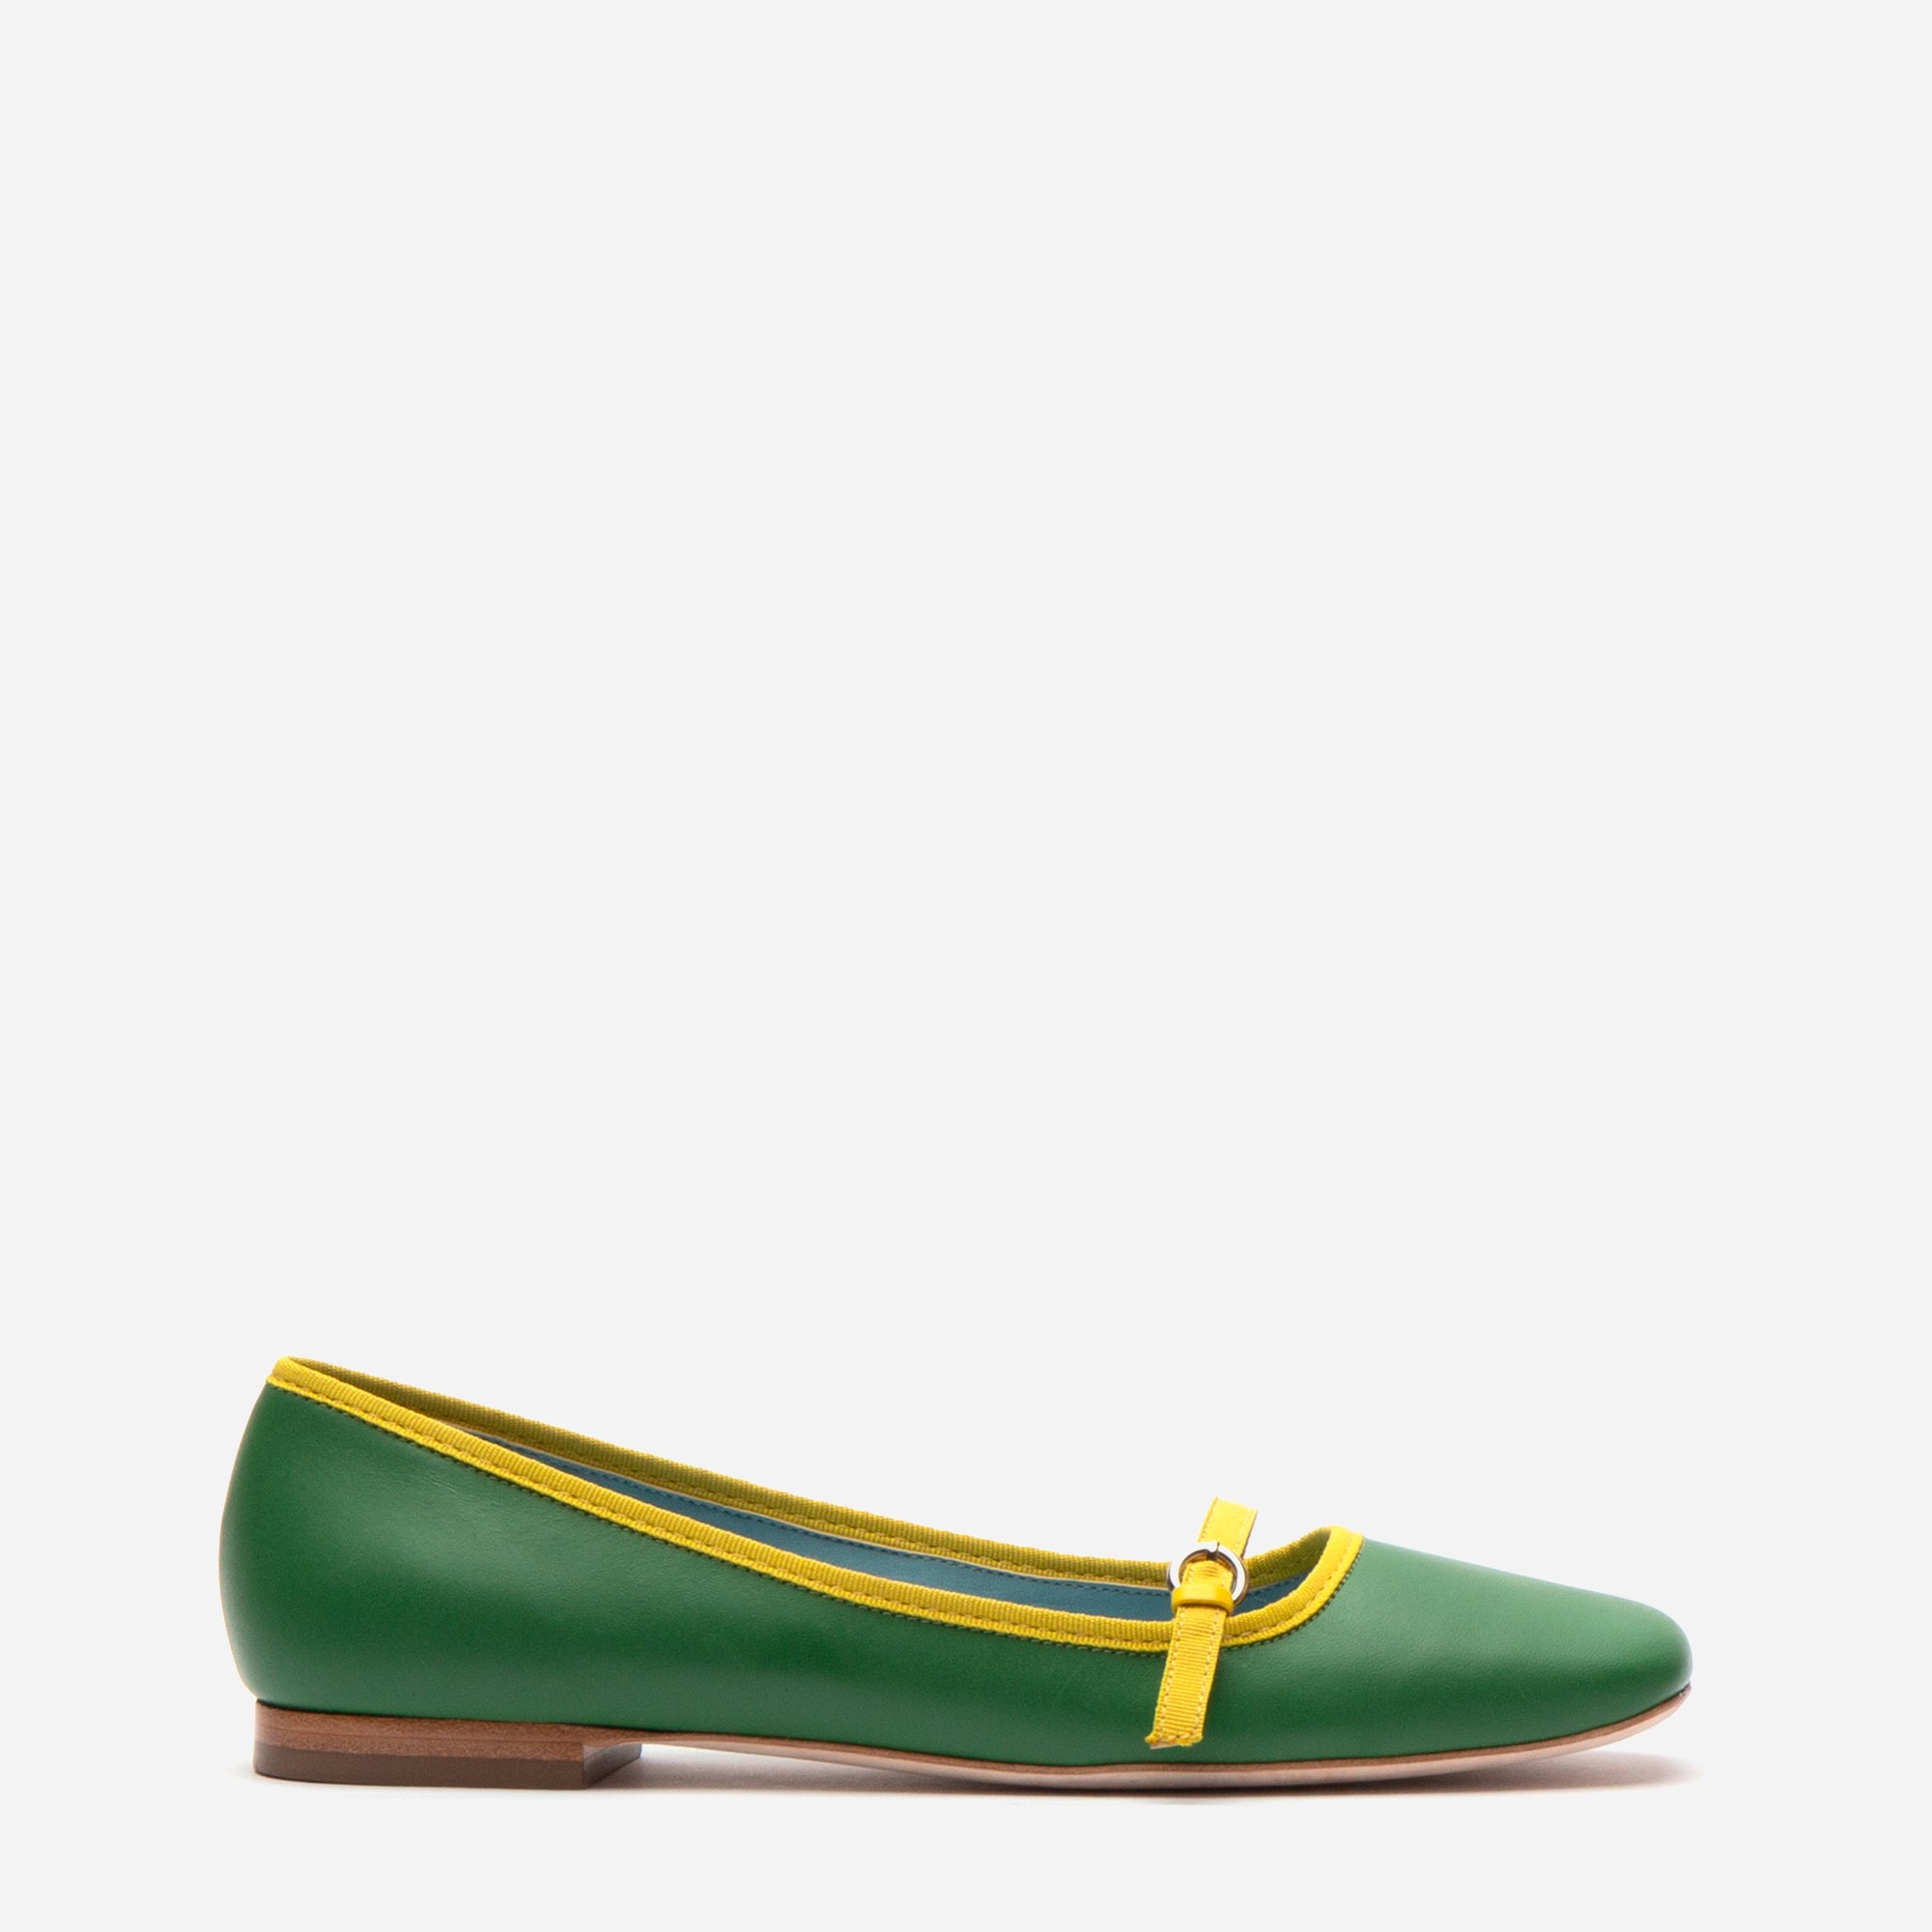 Josie Leather Flat Green Yellow - Frances Valentine